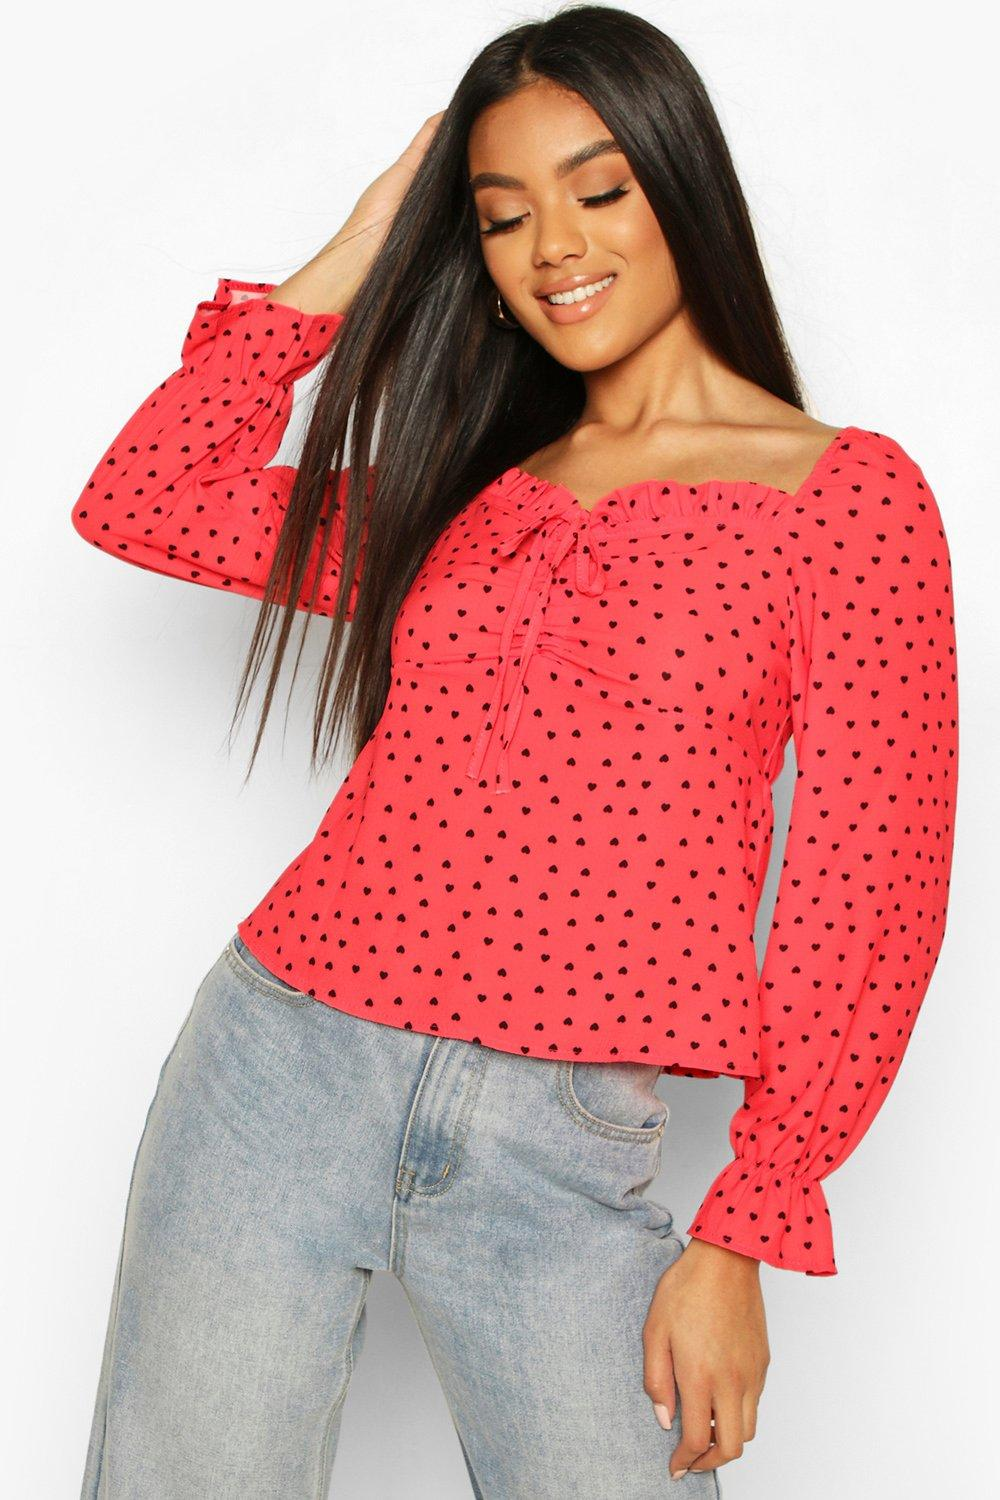 Womens Bluse Mit Herzmuster - Rot - 40, Rot - Boohoo.com